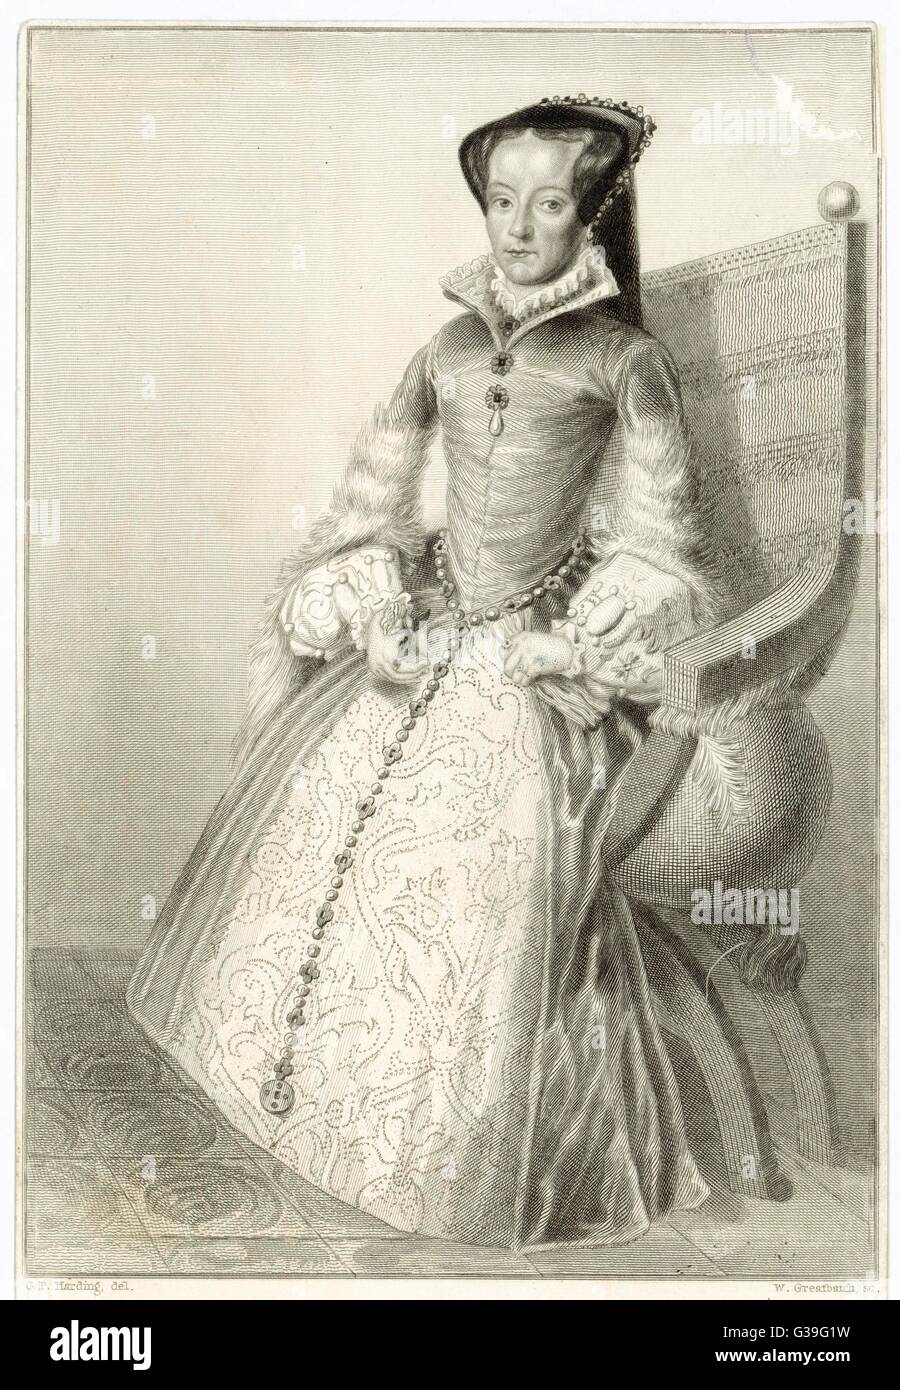 MARY TUDOR  Queen of England        Date: 1516 - 1558 - Stock Image